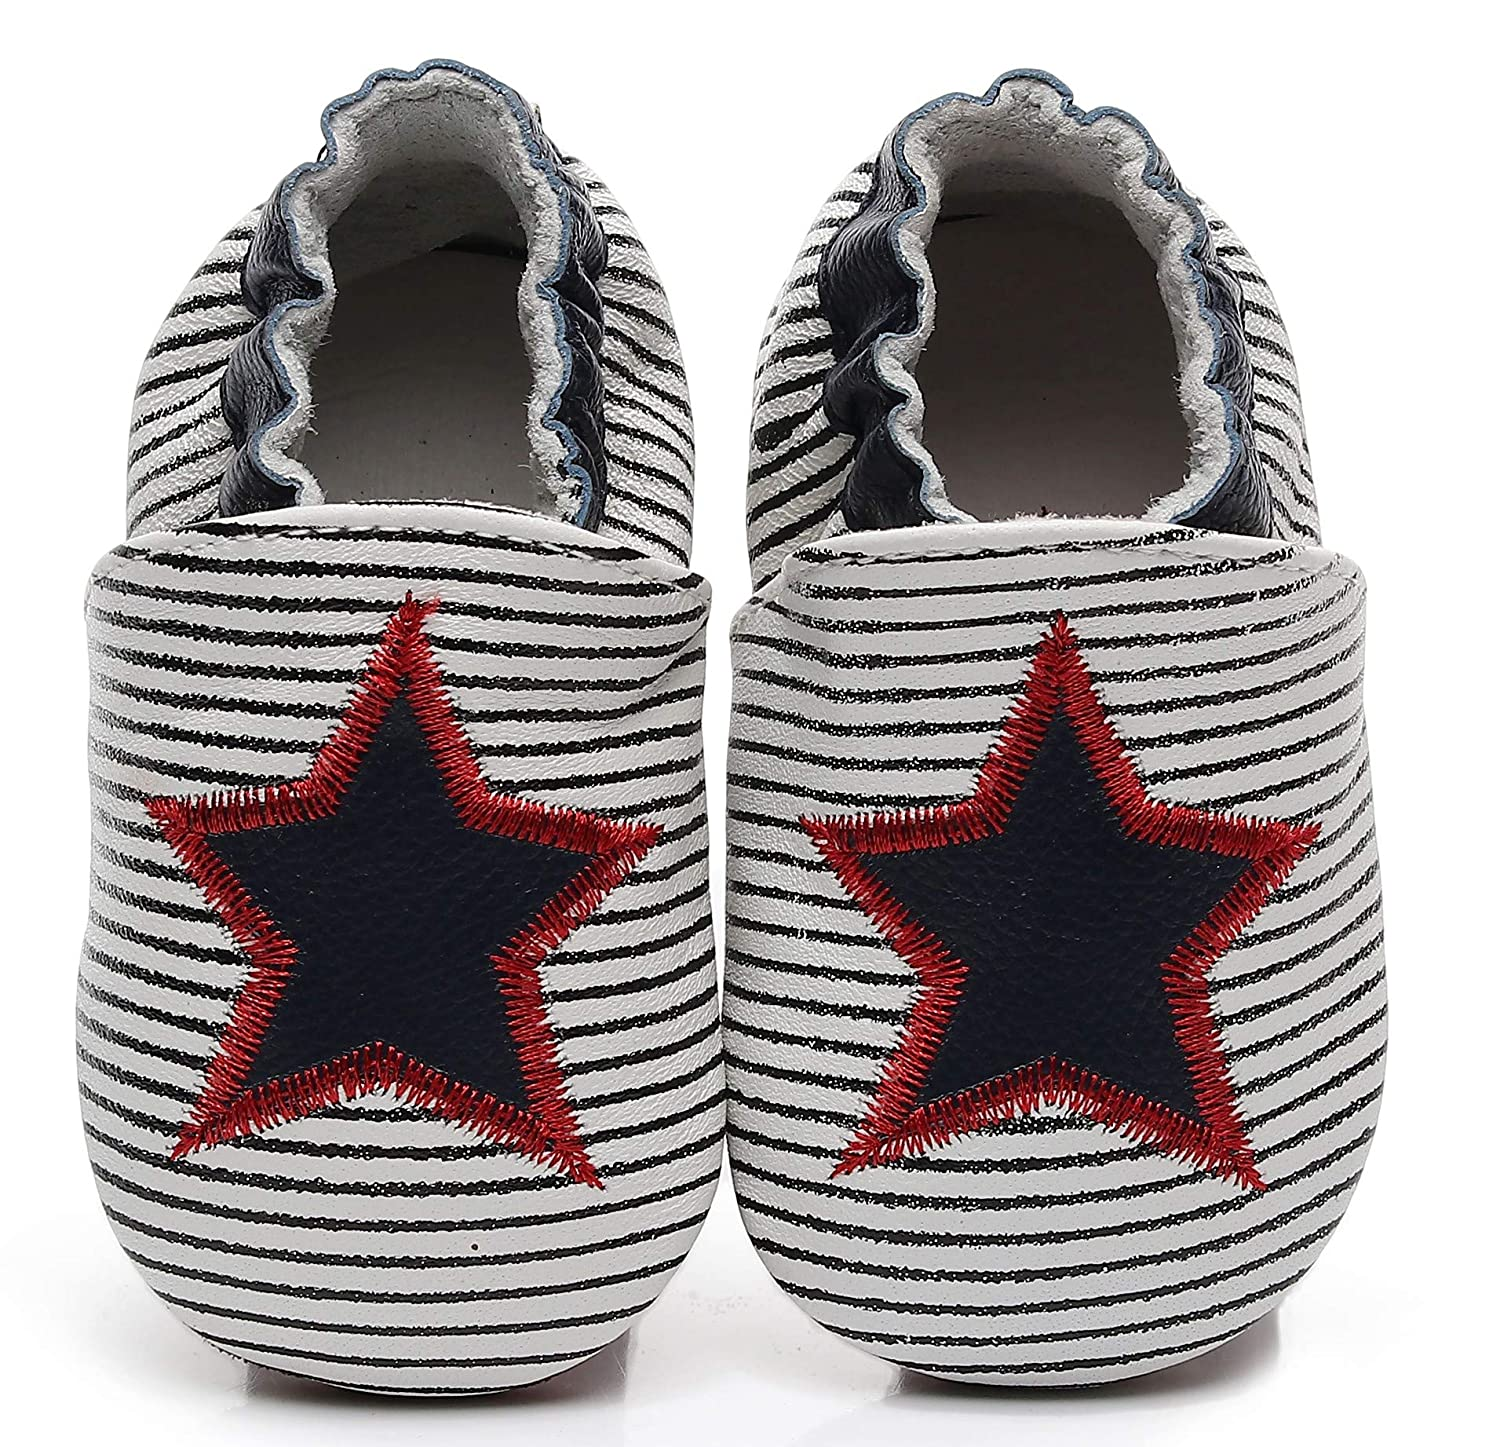 BebilaBaby Shoes - Soft Sole StripeCrib Shoes Leather Star Moccasins for Toddler First Walkers